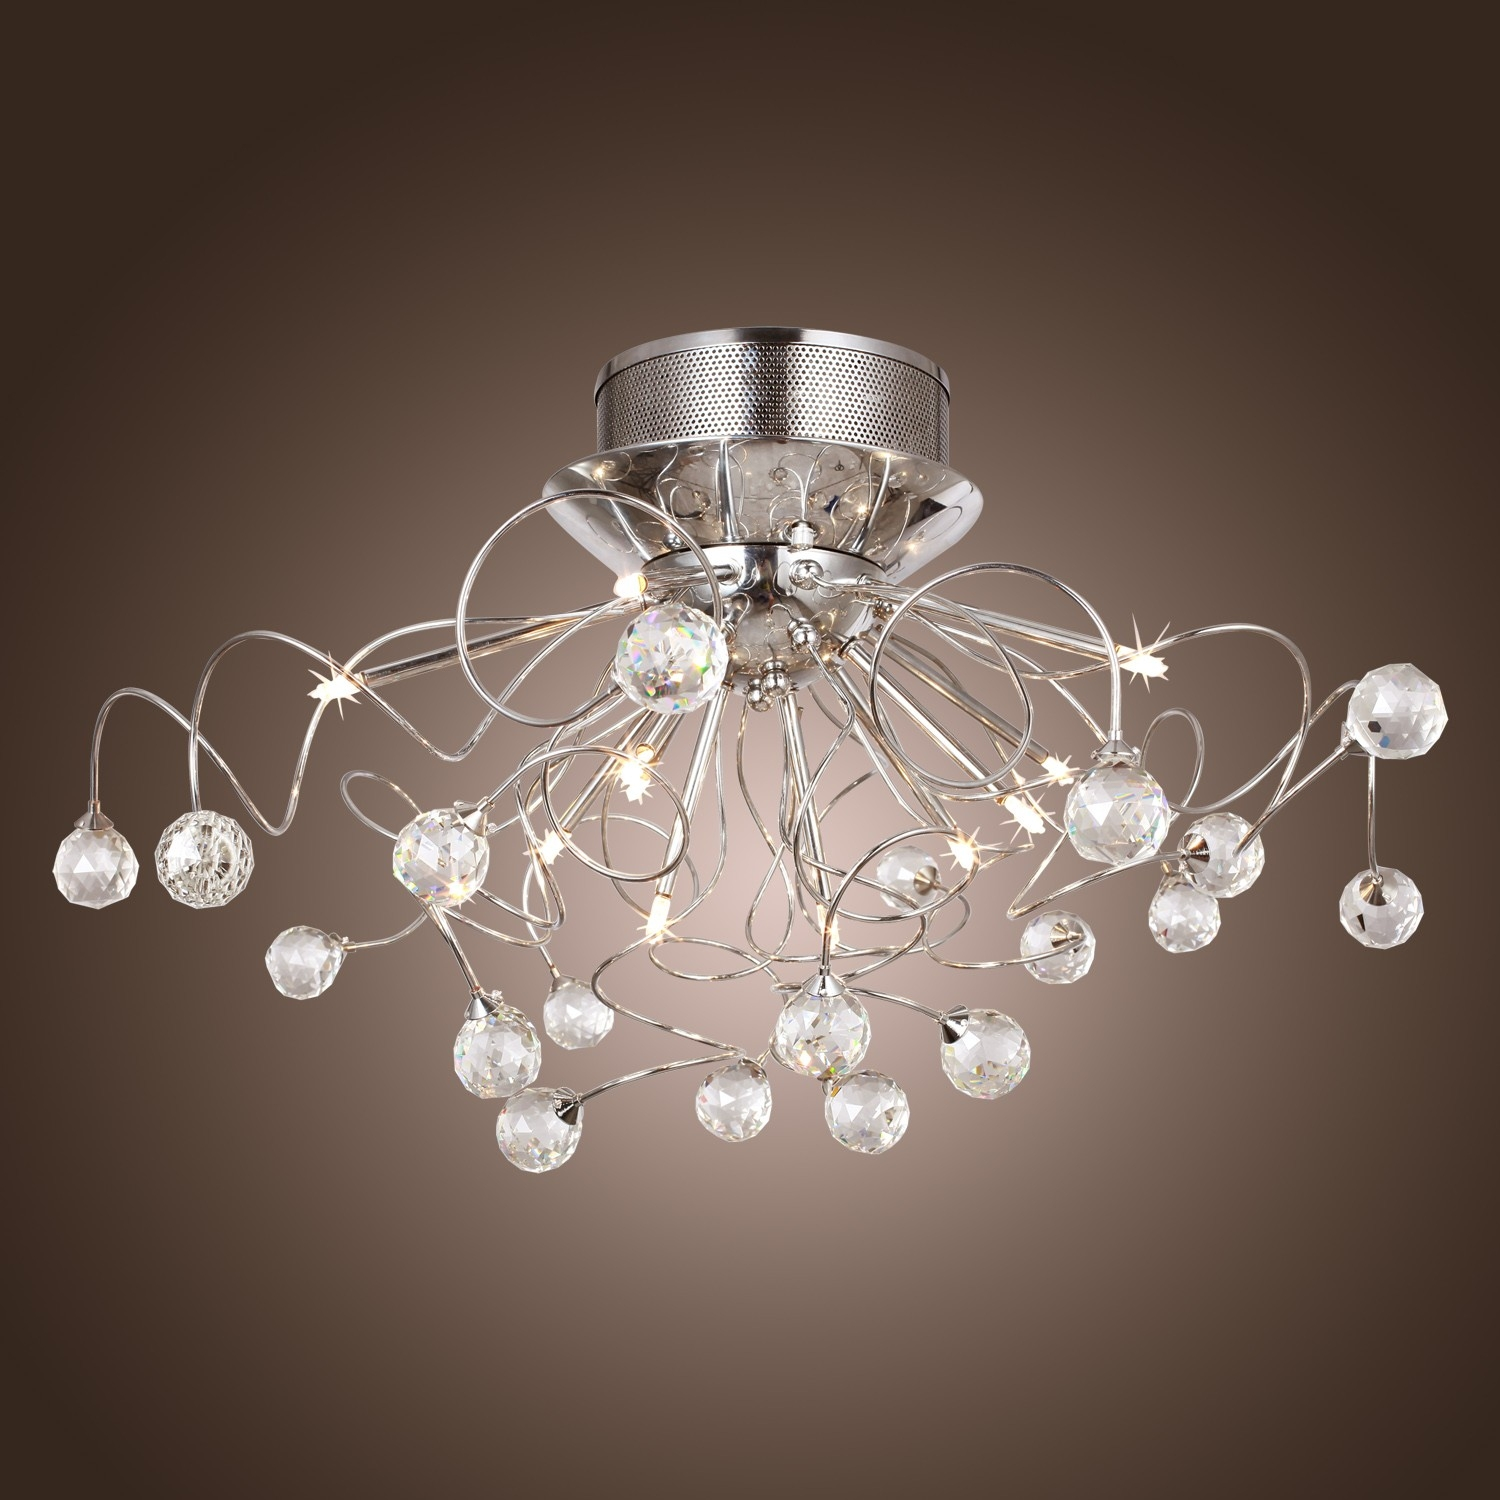 Modern Crystal Chandelier With 11 Lights Chrom Flush Mount Throughout Chandeliers For Hallways (#11 of 12)